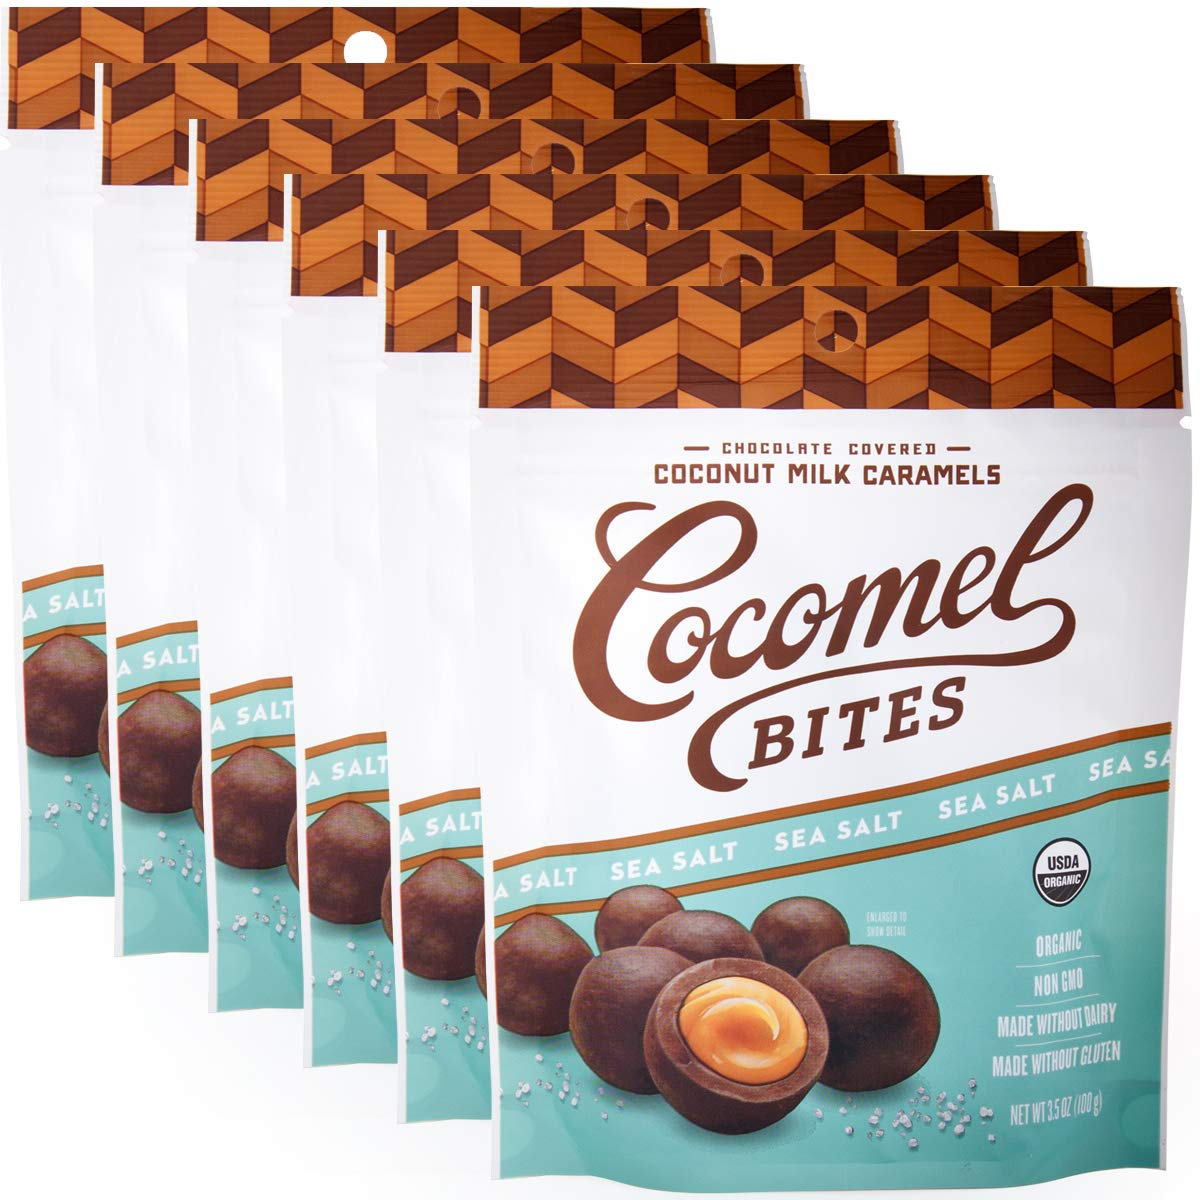 Cocomels Chocolate Sea Salt Caramel Bites, Organic Candy, Dairy Free, Vegan, Gluten Free, Non-GMO, No High Fructose Corn Syrup, Kosher, Plant Based, (6 Pack)